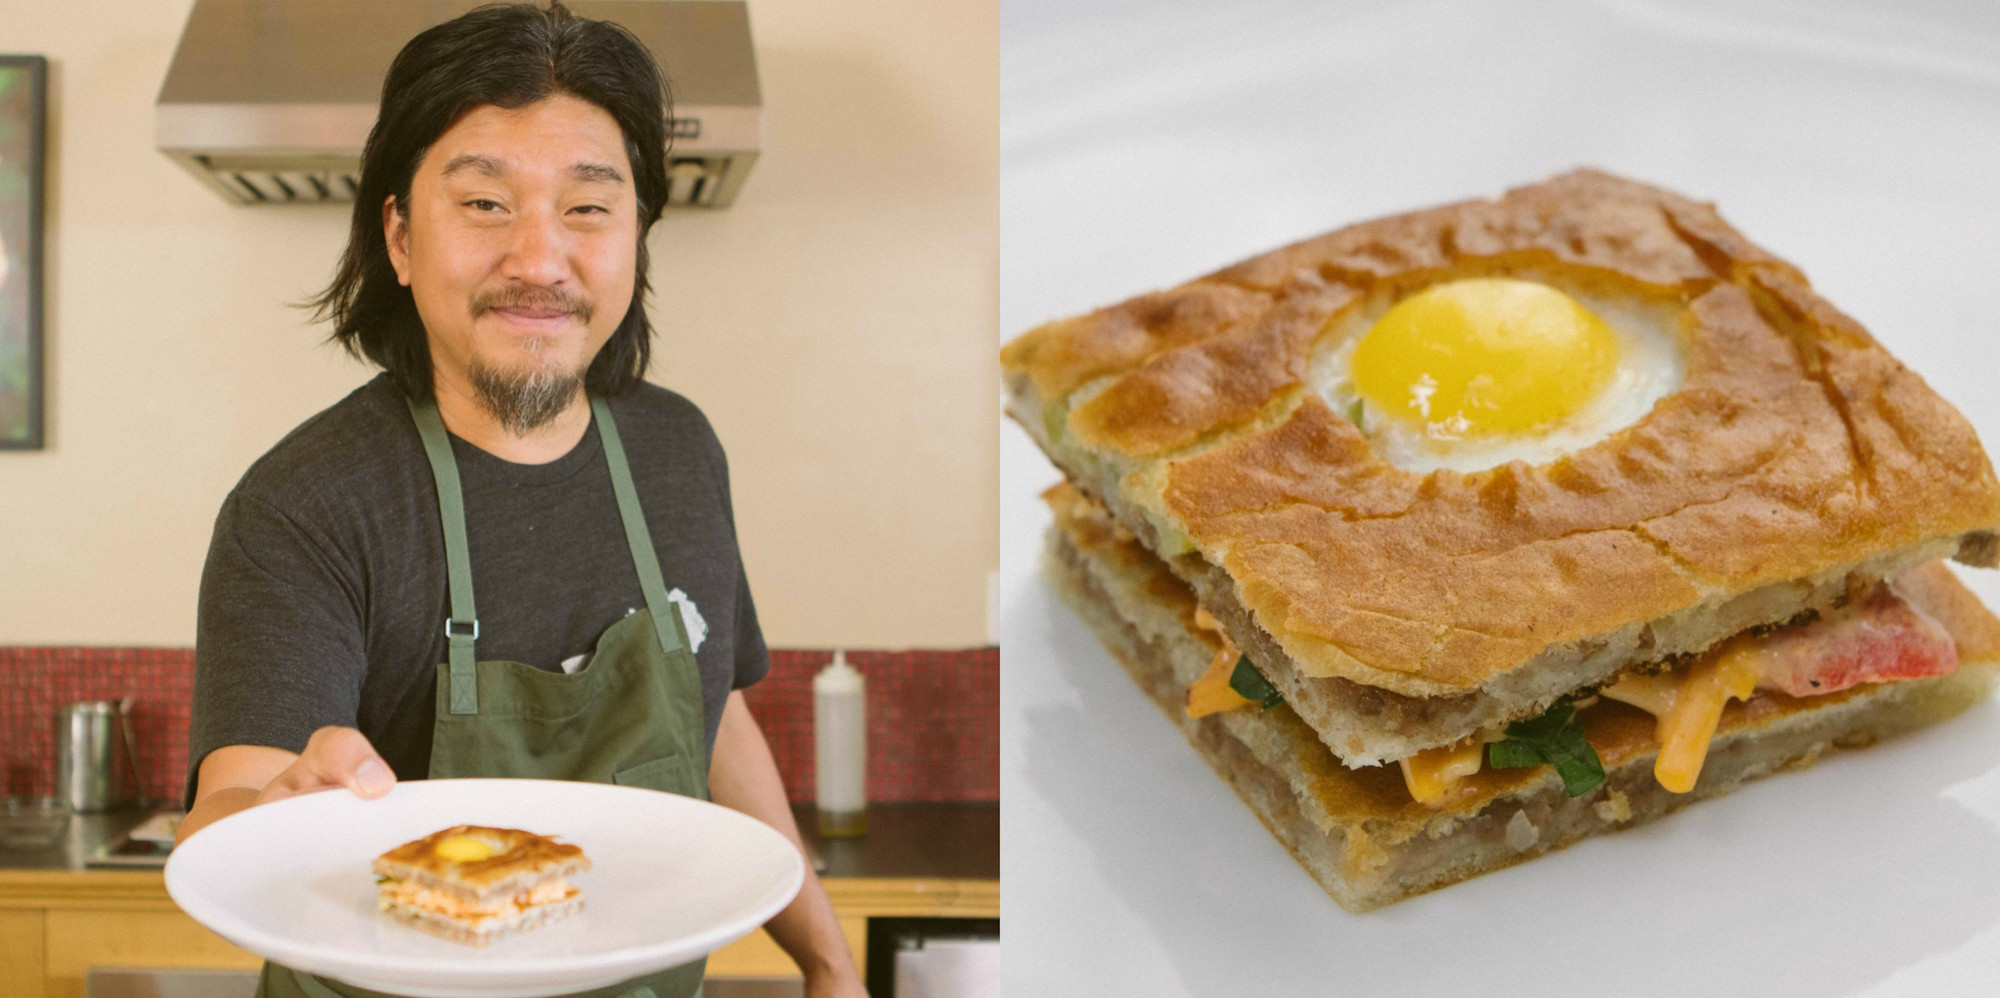 [WATCH] 'Top Chef' Edward Lee Reimagines A White Castle Slider As A Pimento Quail Egg Toad In The Hole